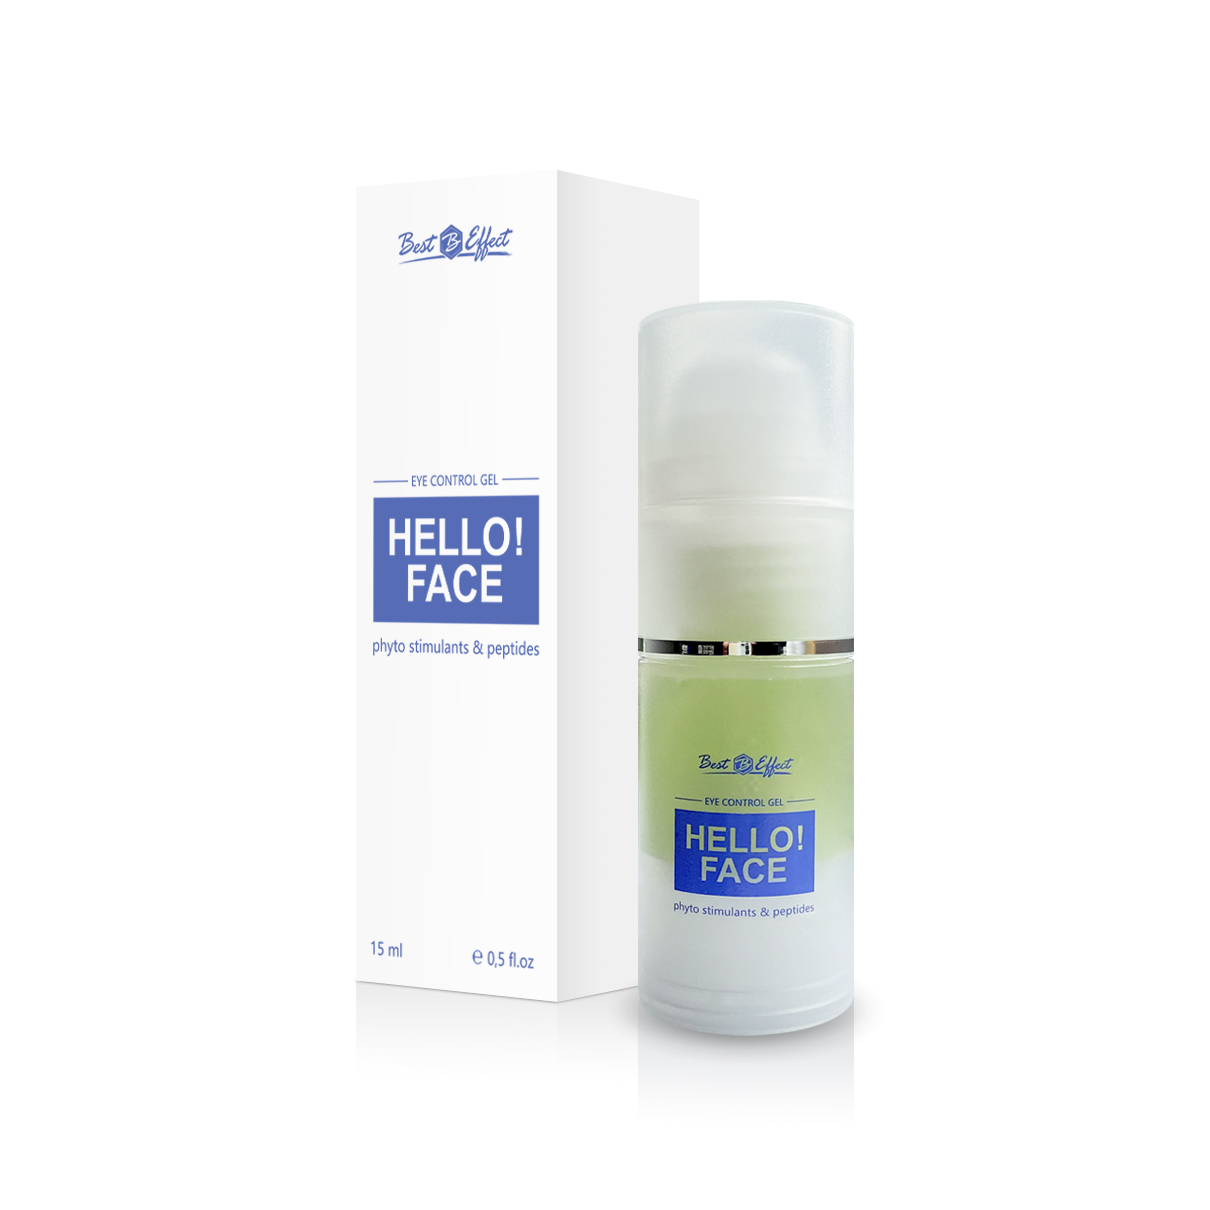 Hello!Face eye control gel